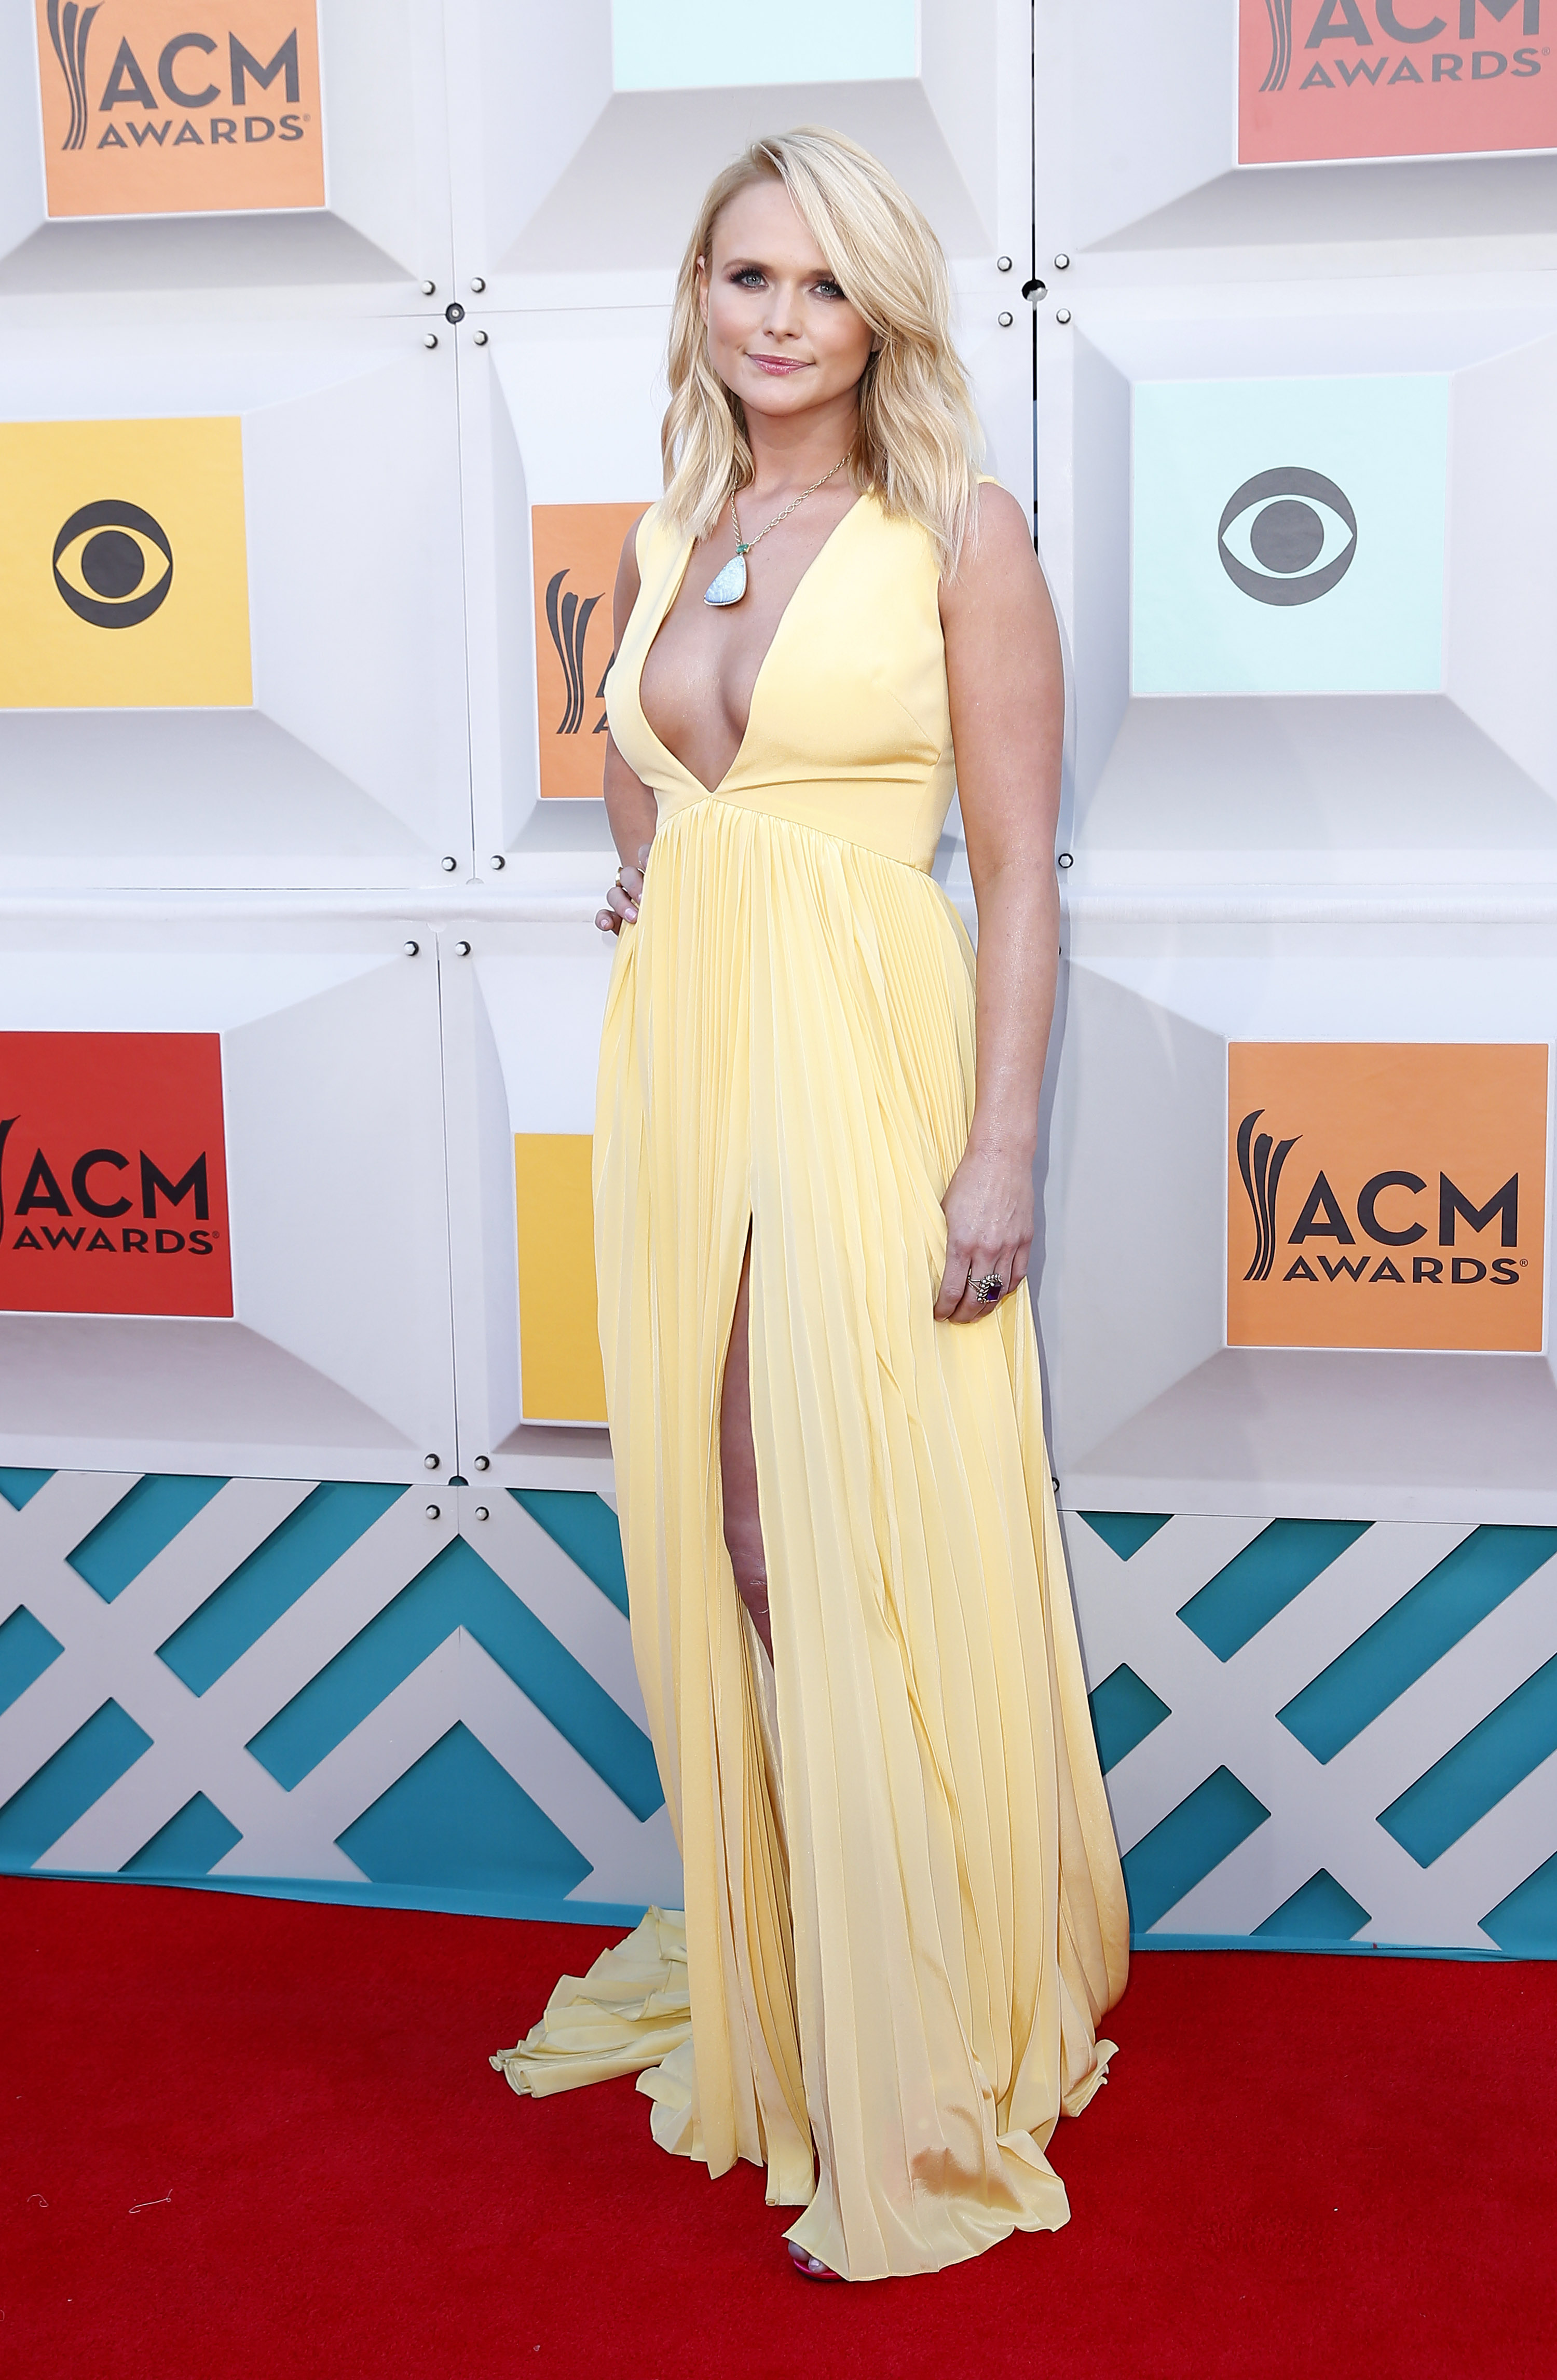 The 51st Academy of Country Music Awards Red Carpet Arrivals at MGM Grand Garden ArenaFeaturing: Miranda LambertWhere: Las Vegas, Nevada, United StatesWhen: 04 Apr 2016Credit: Judy Eddy/WENN.com